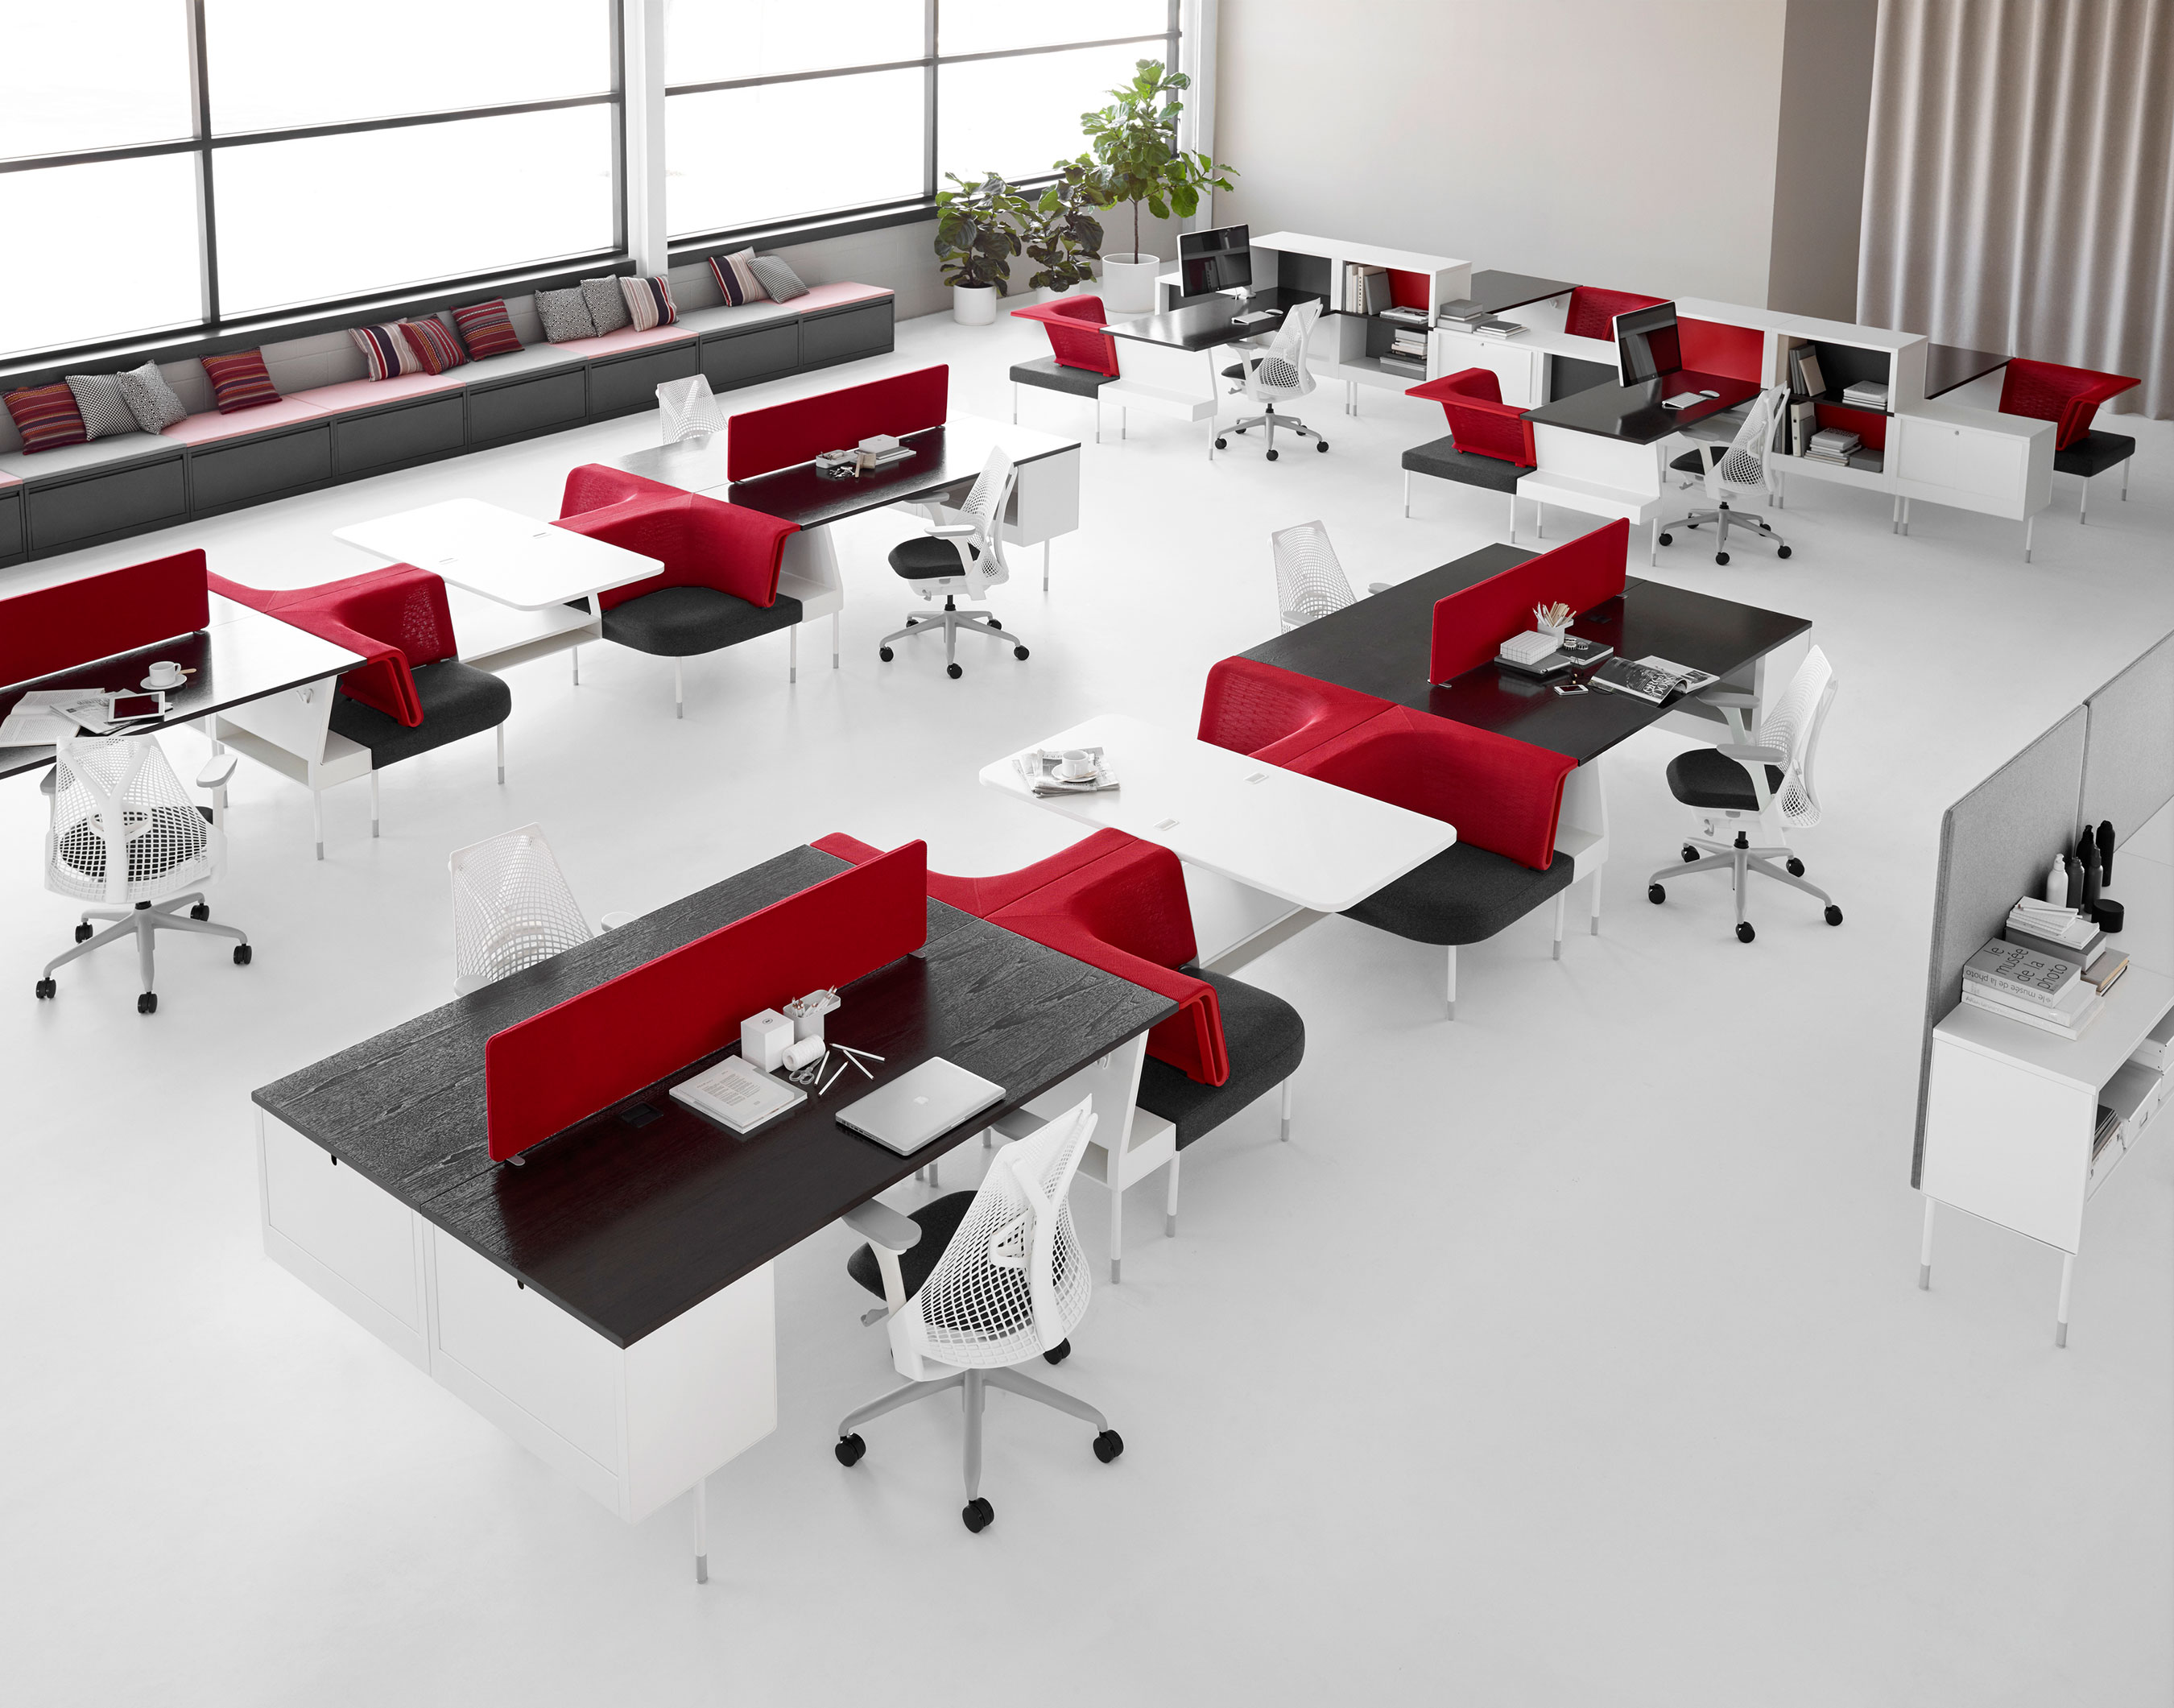 Bürogestaltung beispiele  Herman Miller Brings Living Office℠ to Life